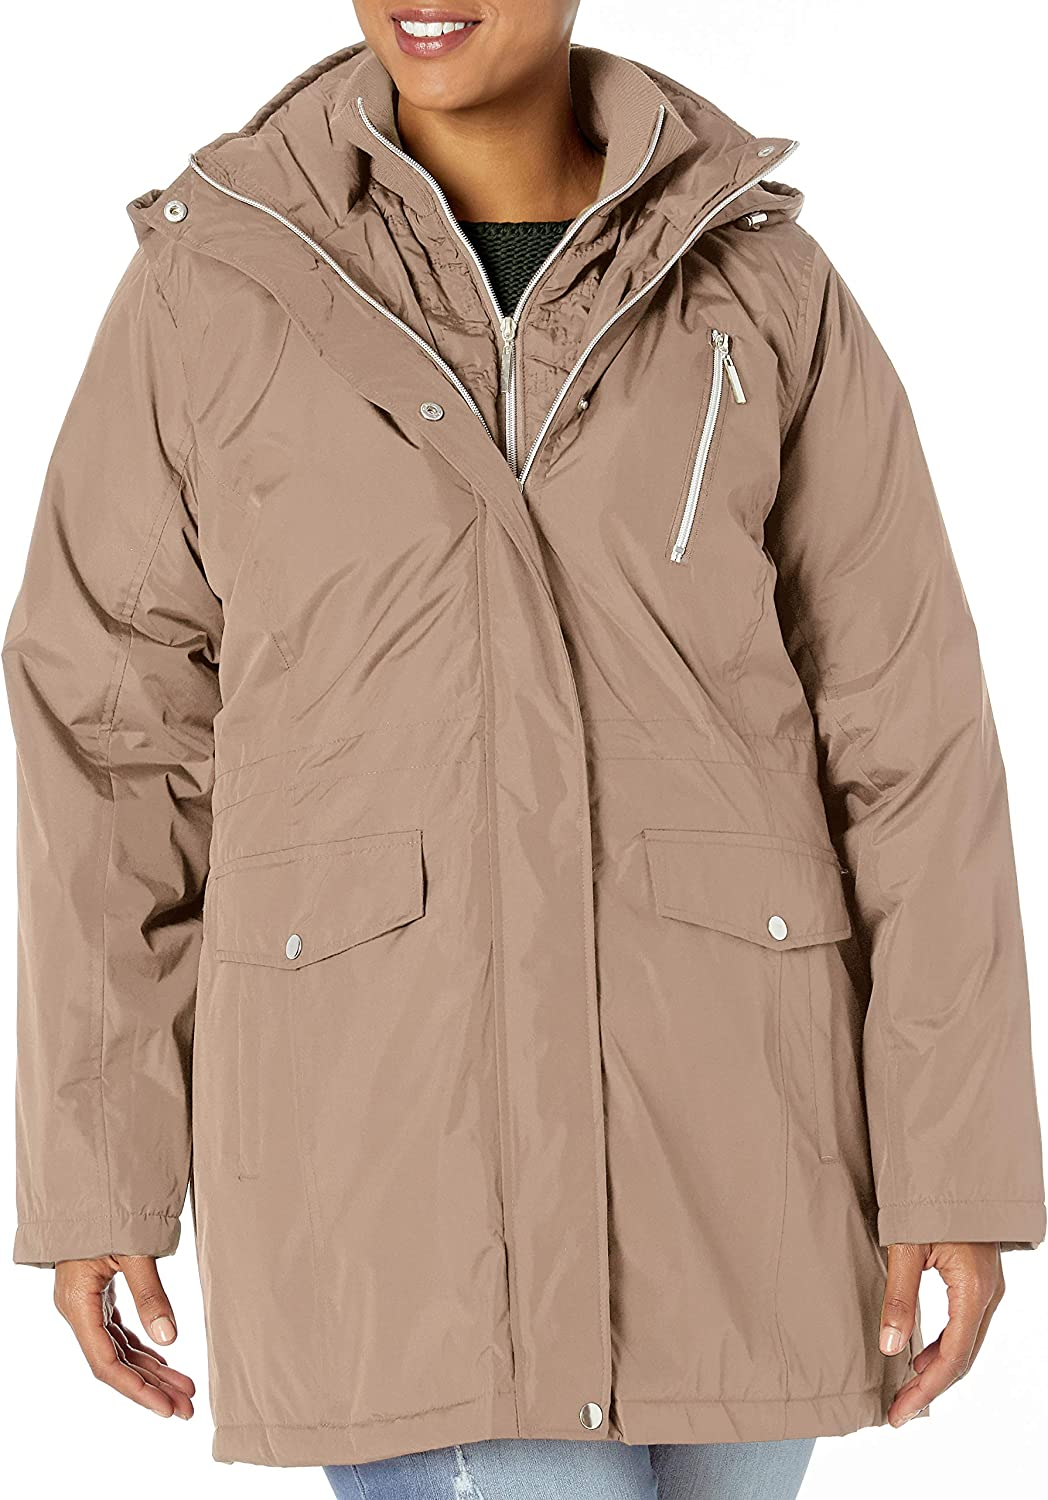 Big Chill Women's Anorak Jacket with Quilted Vestee